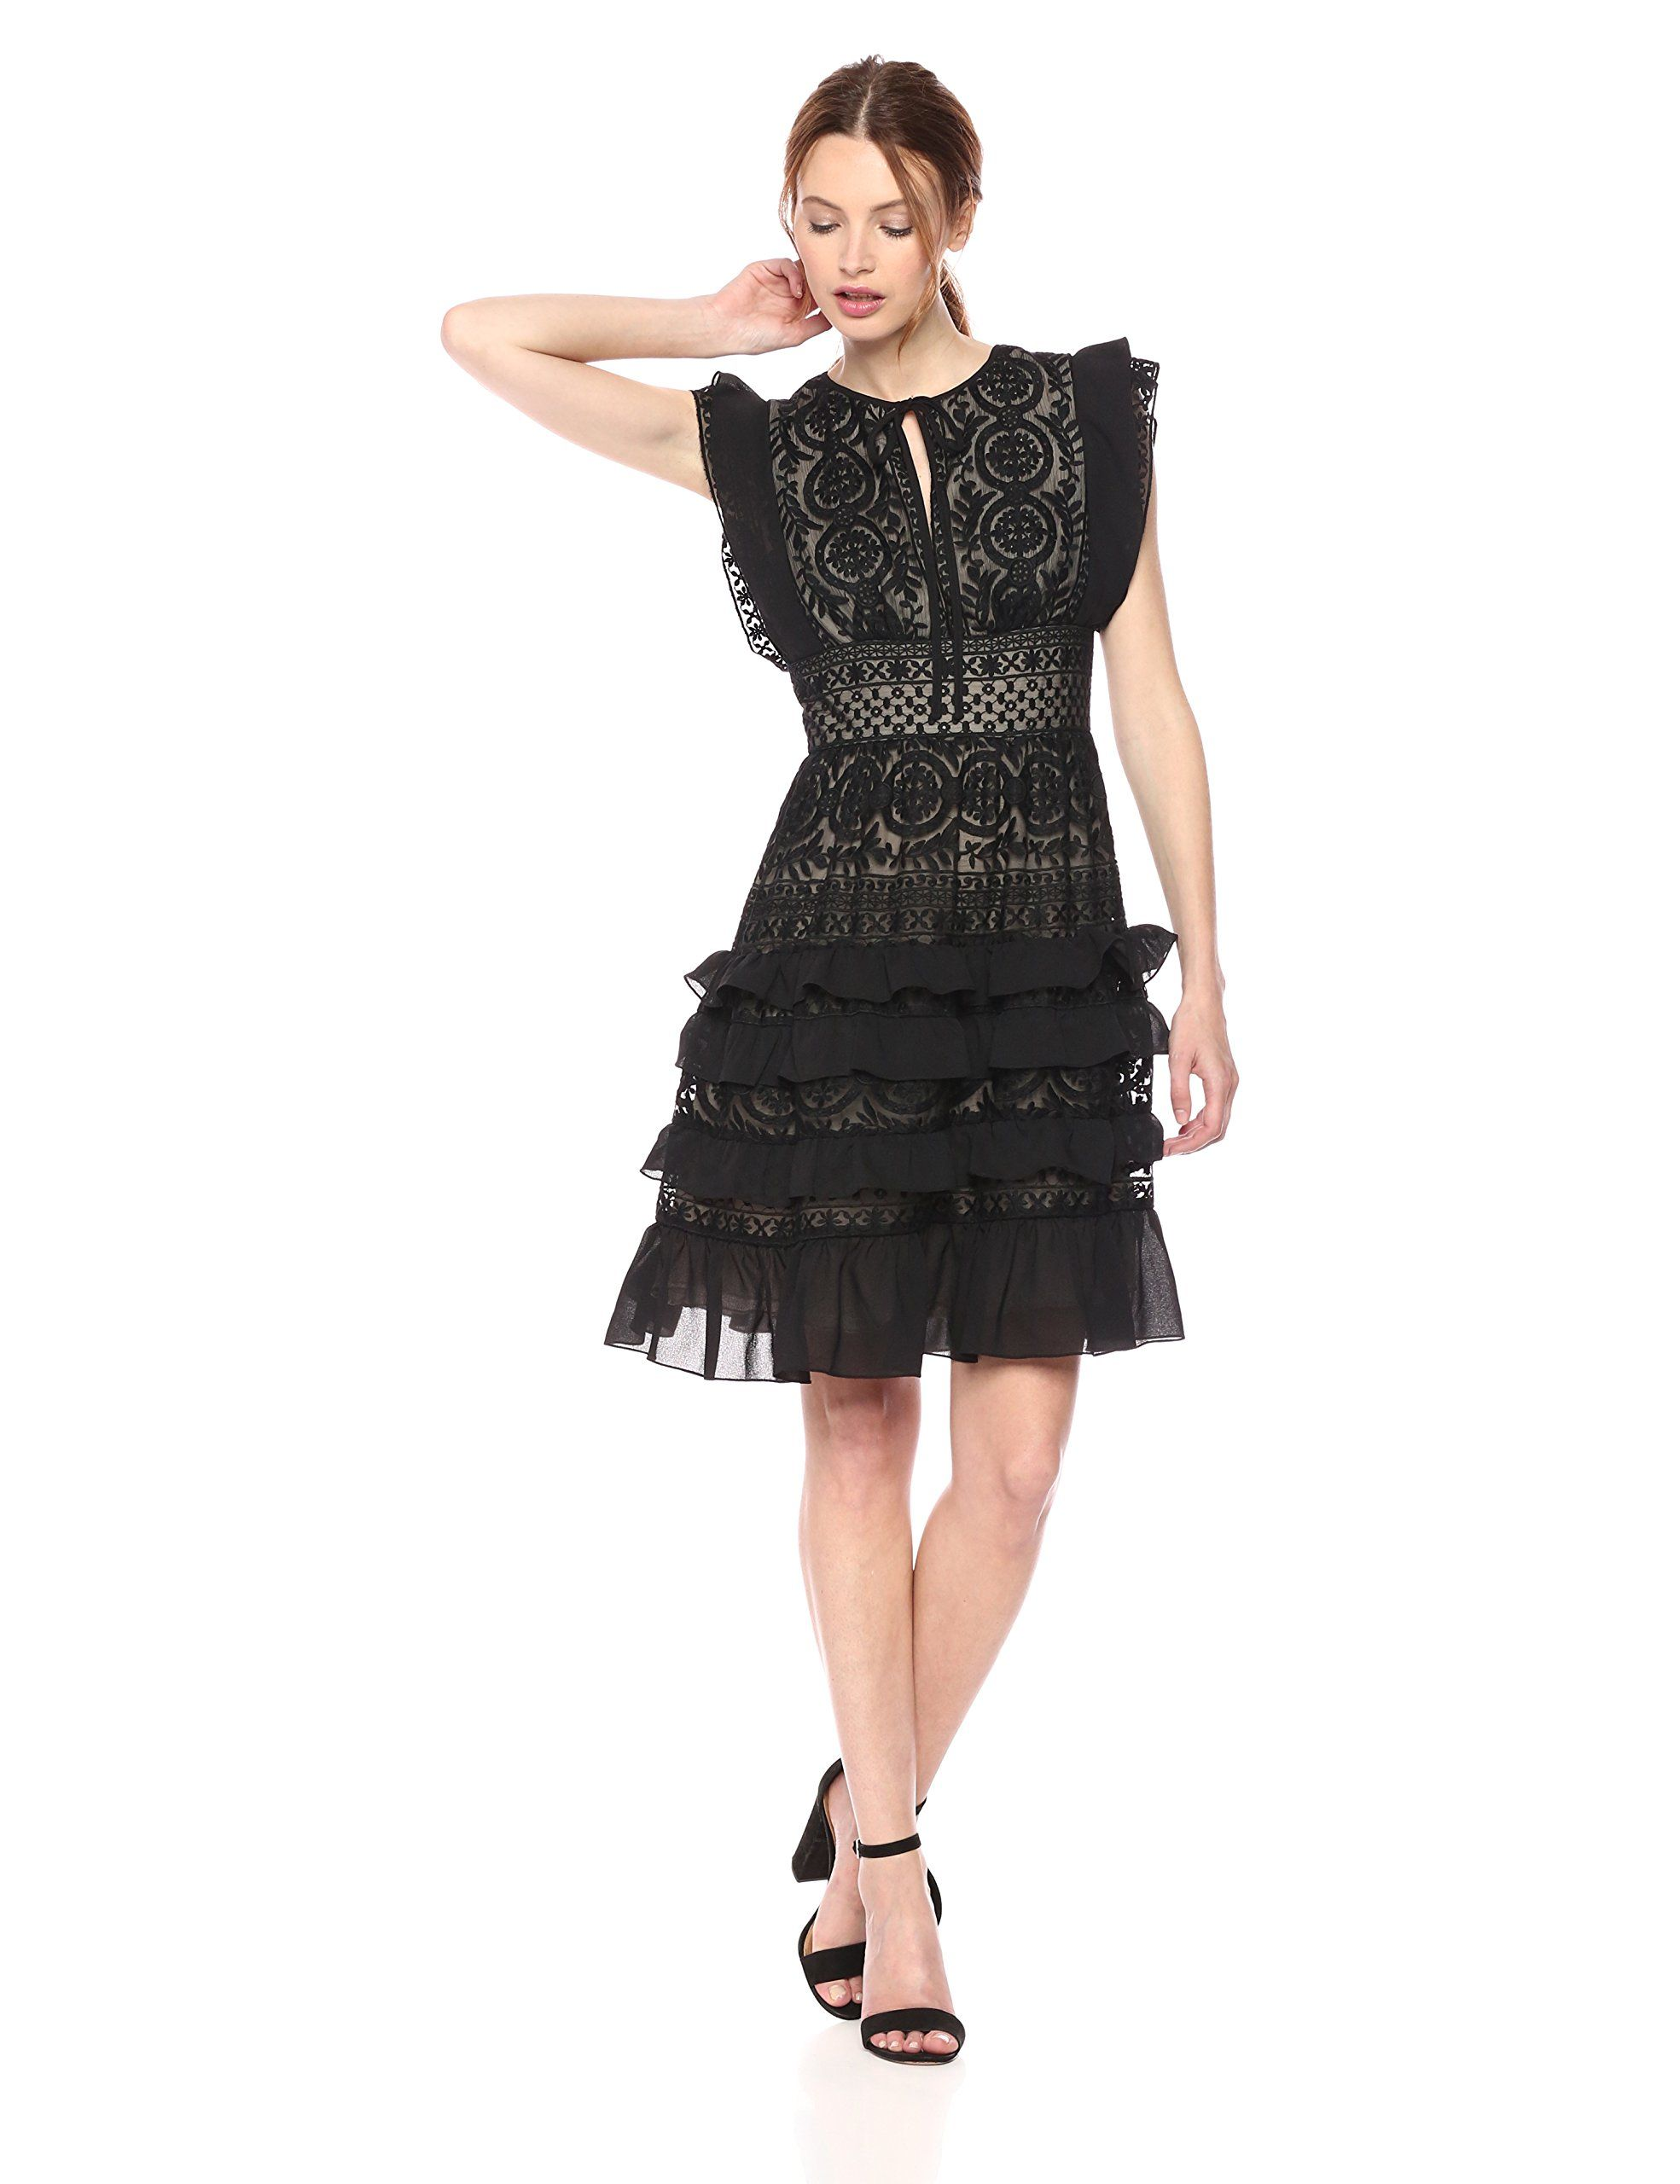 8263832e0d9 ML Monique Lhuillier Womens Embroidered Short Dress Black Nude 10   Read  more at the image link-affiliate link.  dresses